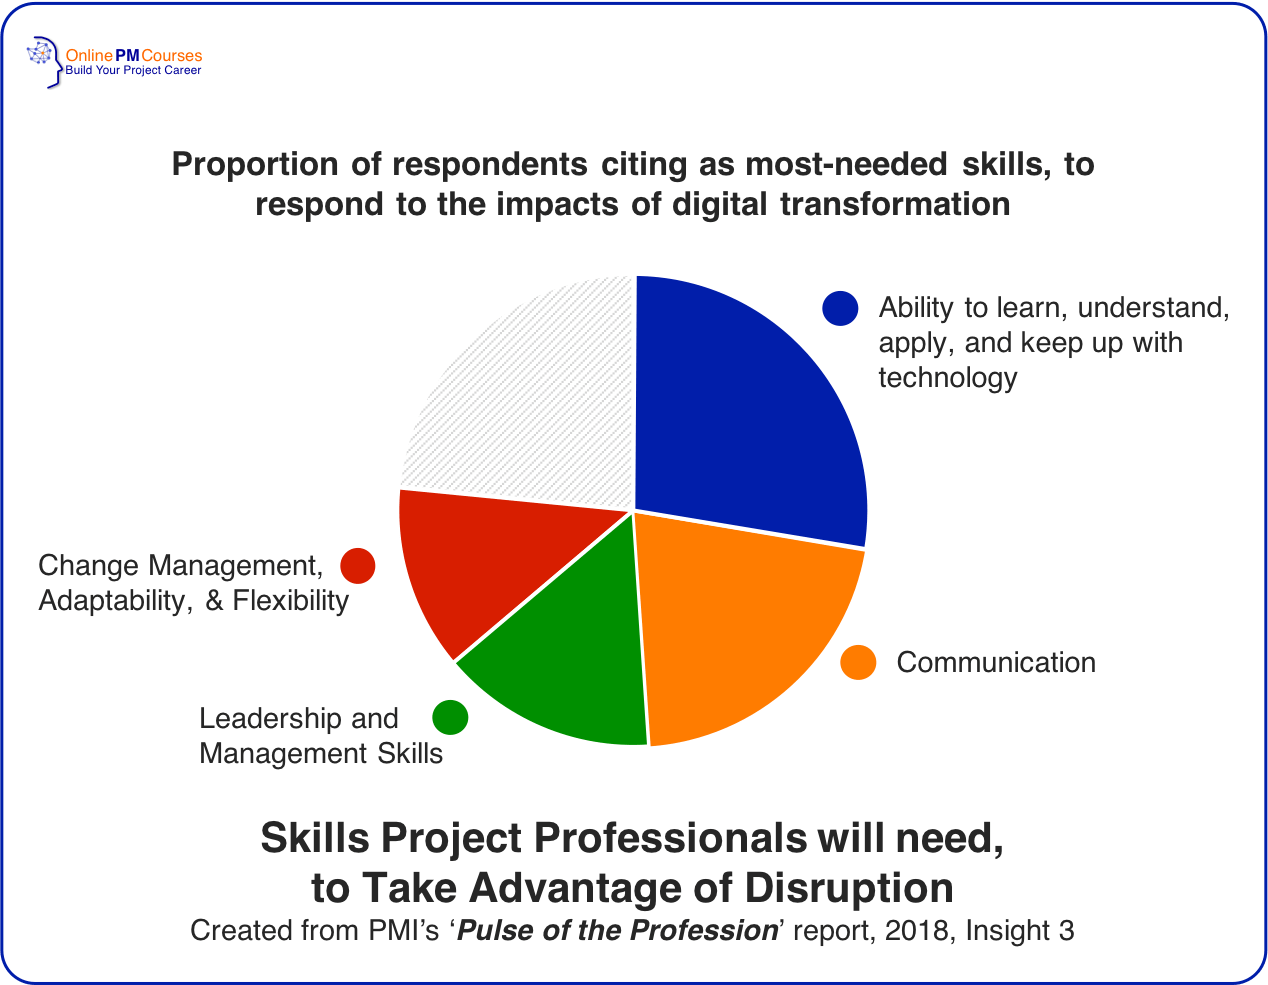 Skills Project Professionals will need